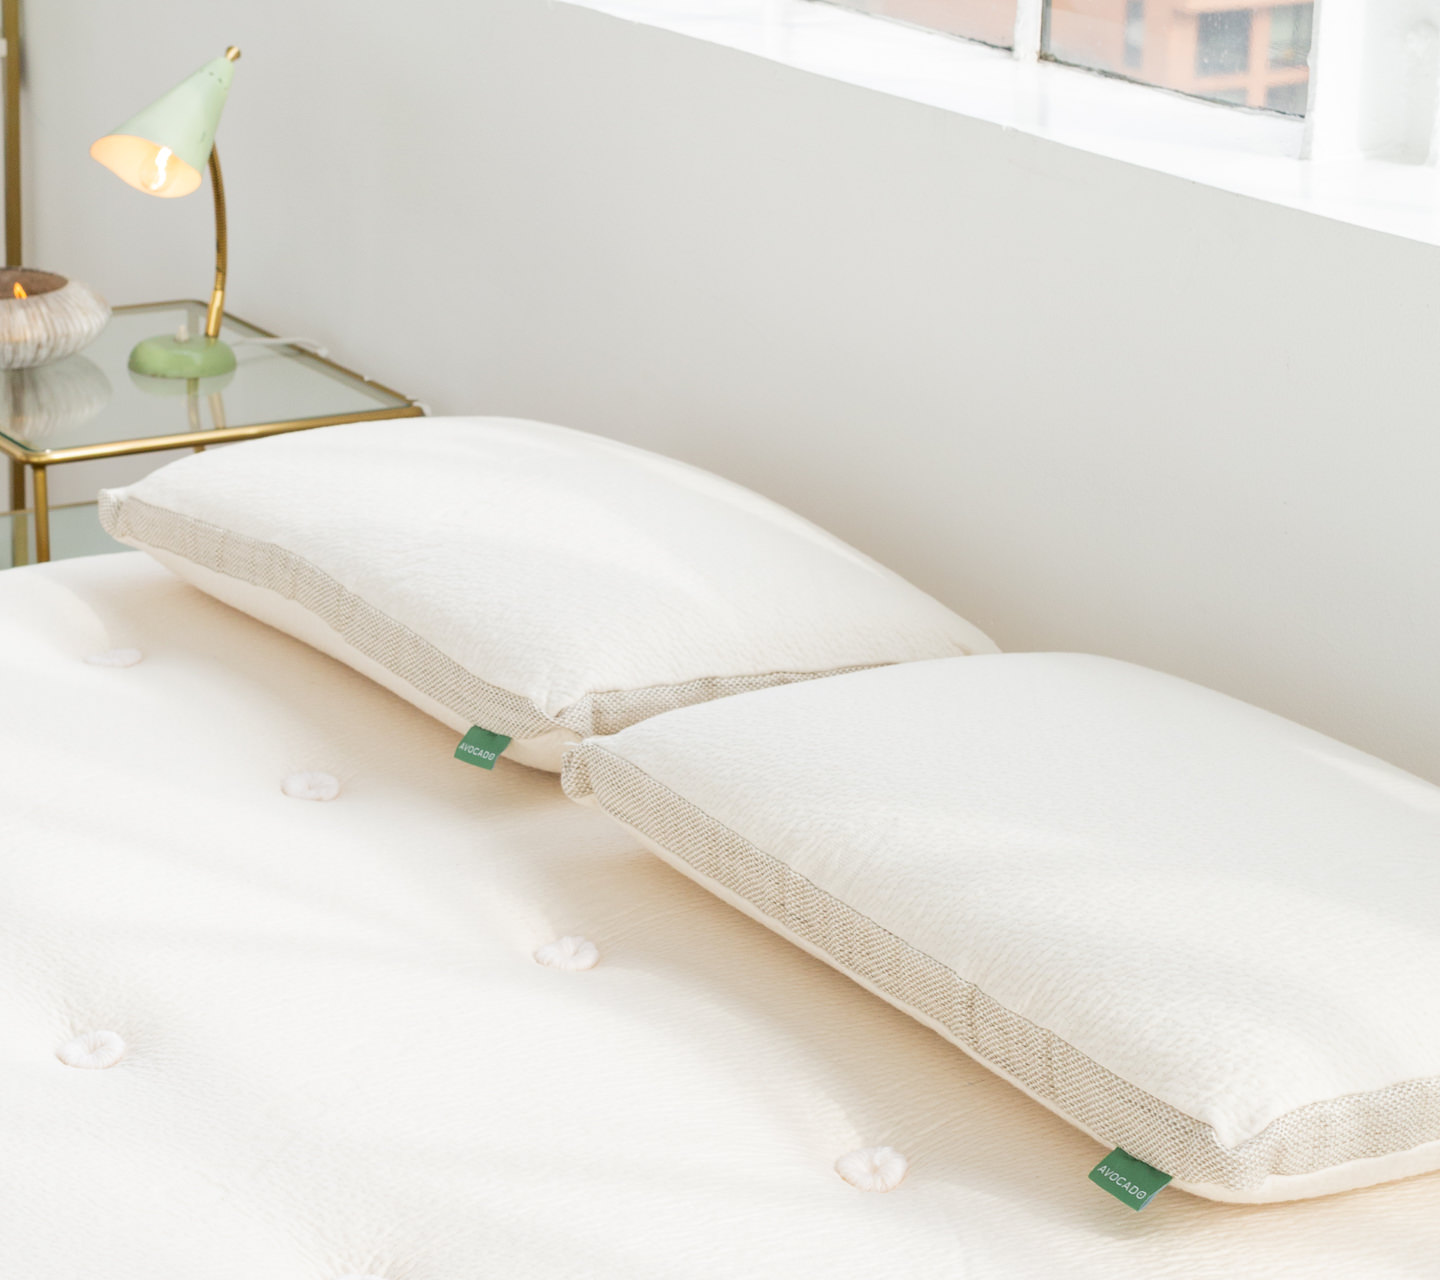 the new latex pillow for avocado